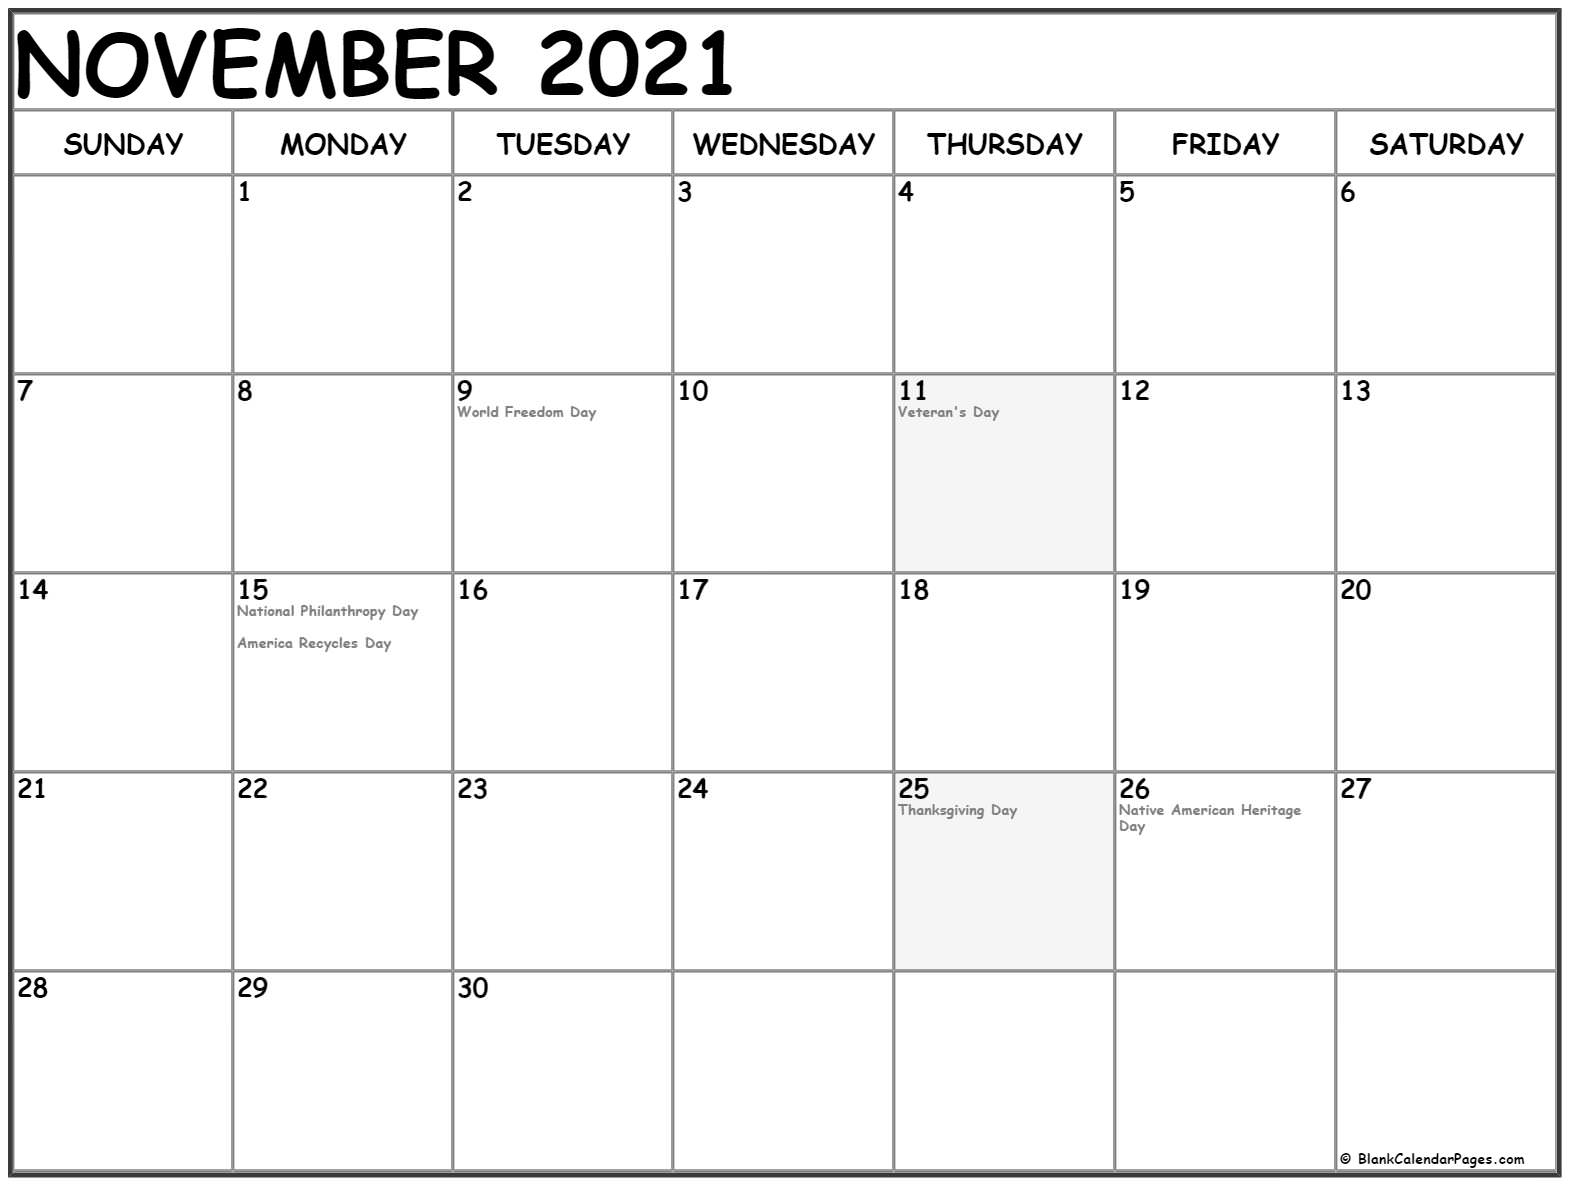 November 2019 calendar with USA holidays